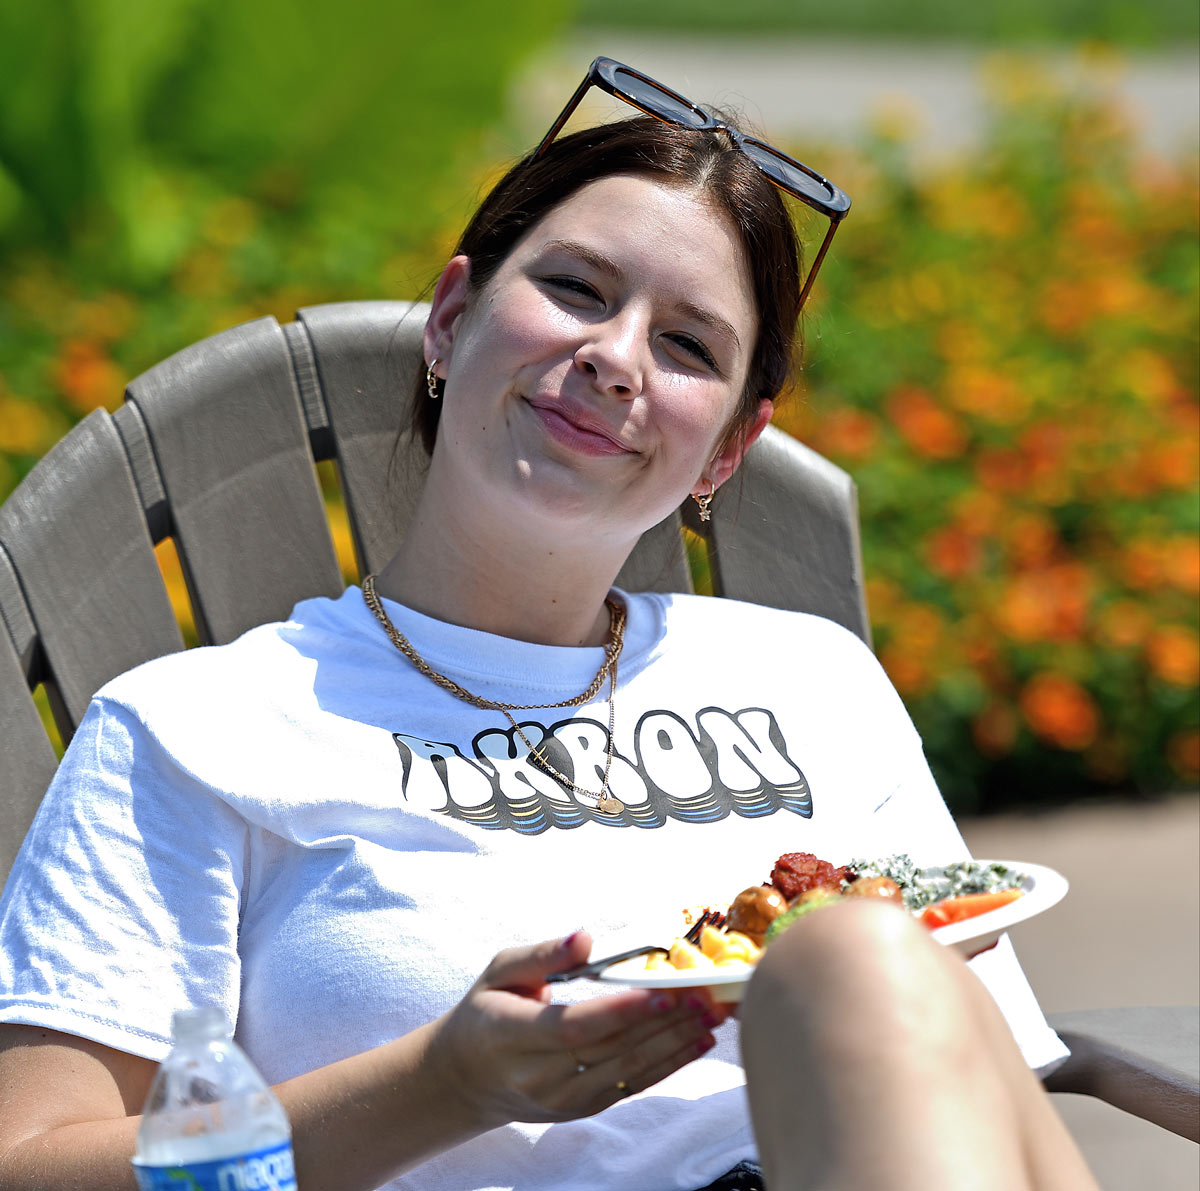 A new student relaxes while enjoying lunch